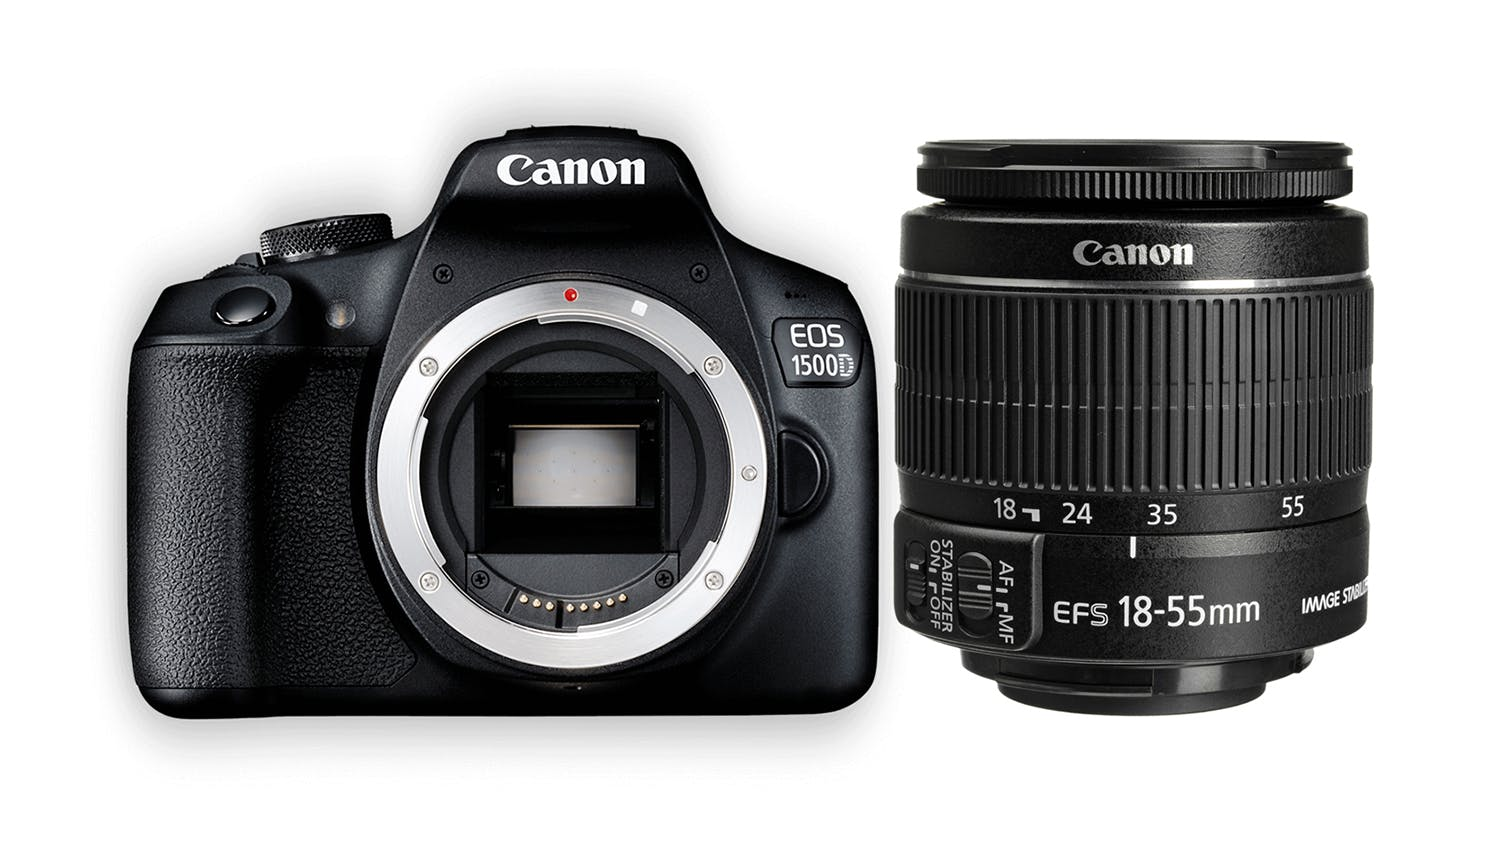 Canon EOS 1500D DSLR with EF-S 18-55mm Lens | Harvey Norman New ...